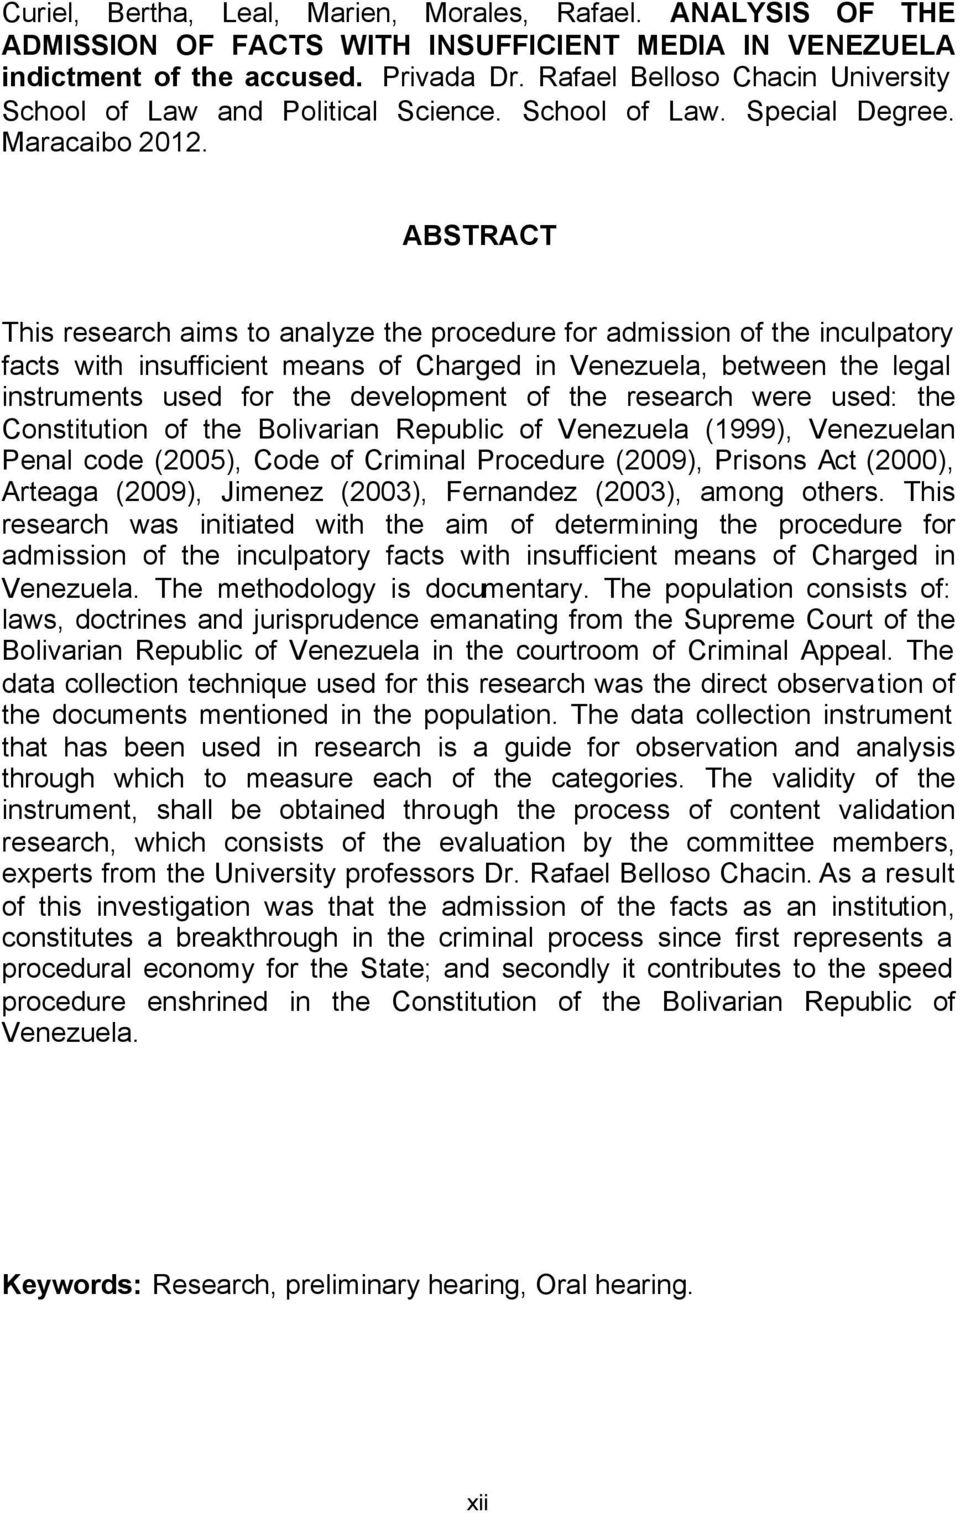 ABSTRACT This research aims to analyze the procedure for admission of the inculpatory facts with insufficient means of Charged in Venezuela, between the legal instruments used for the development of